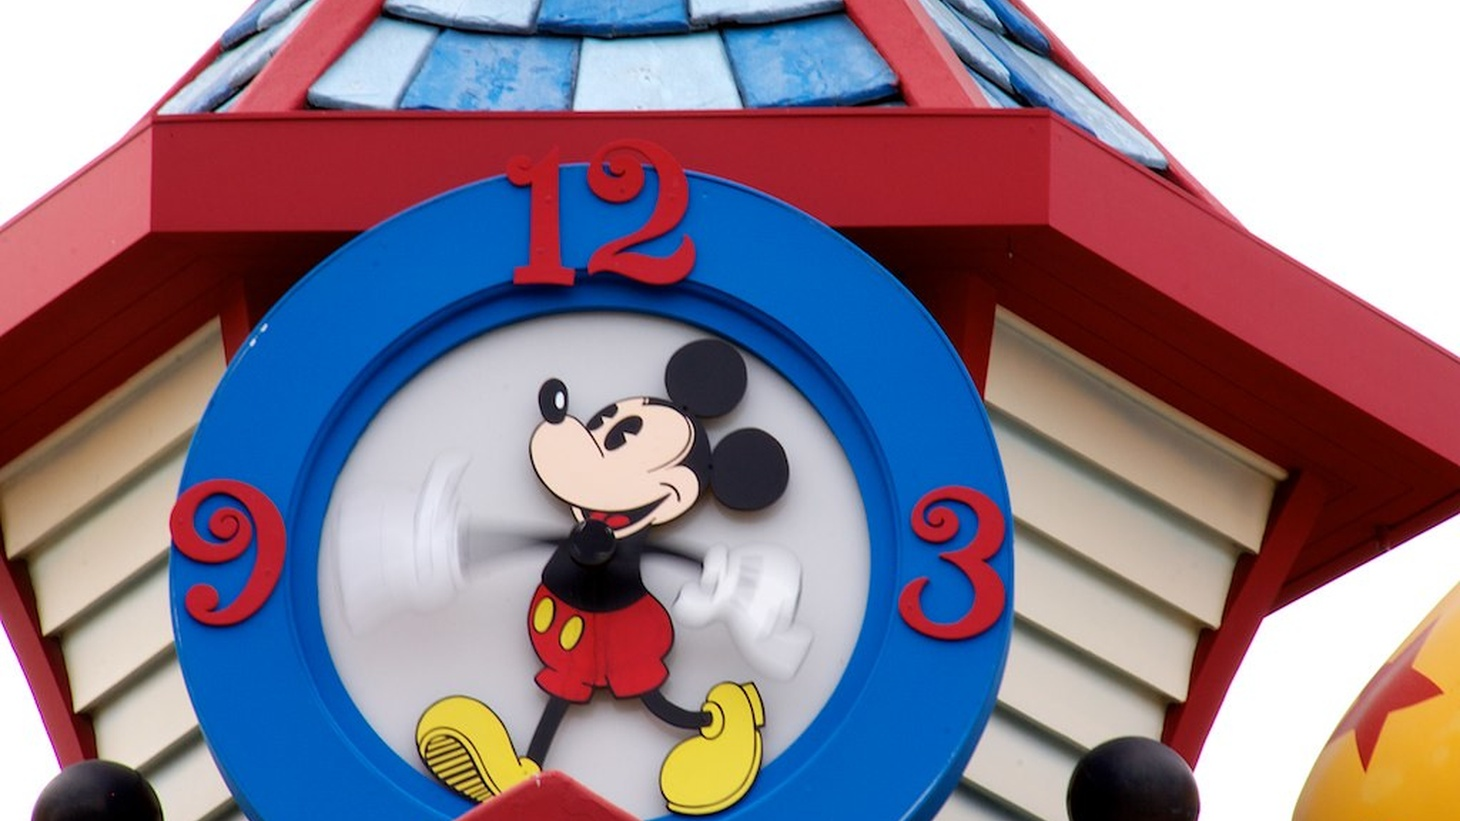 Growing up with the last name Disney meant all the perks one might imagine from the most magical place on earth. But for Abigail Disney, Walt's great-niece, there was also a lot of baggage.